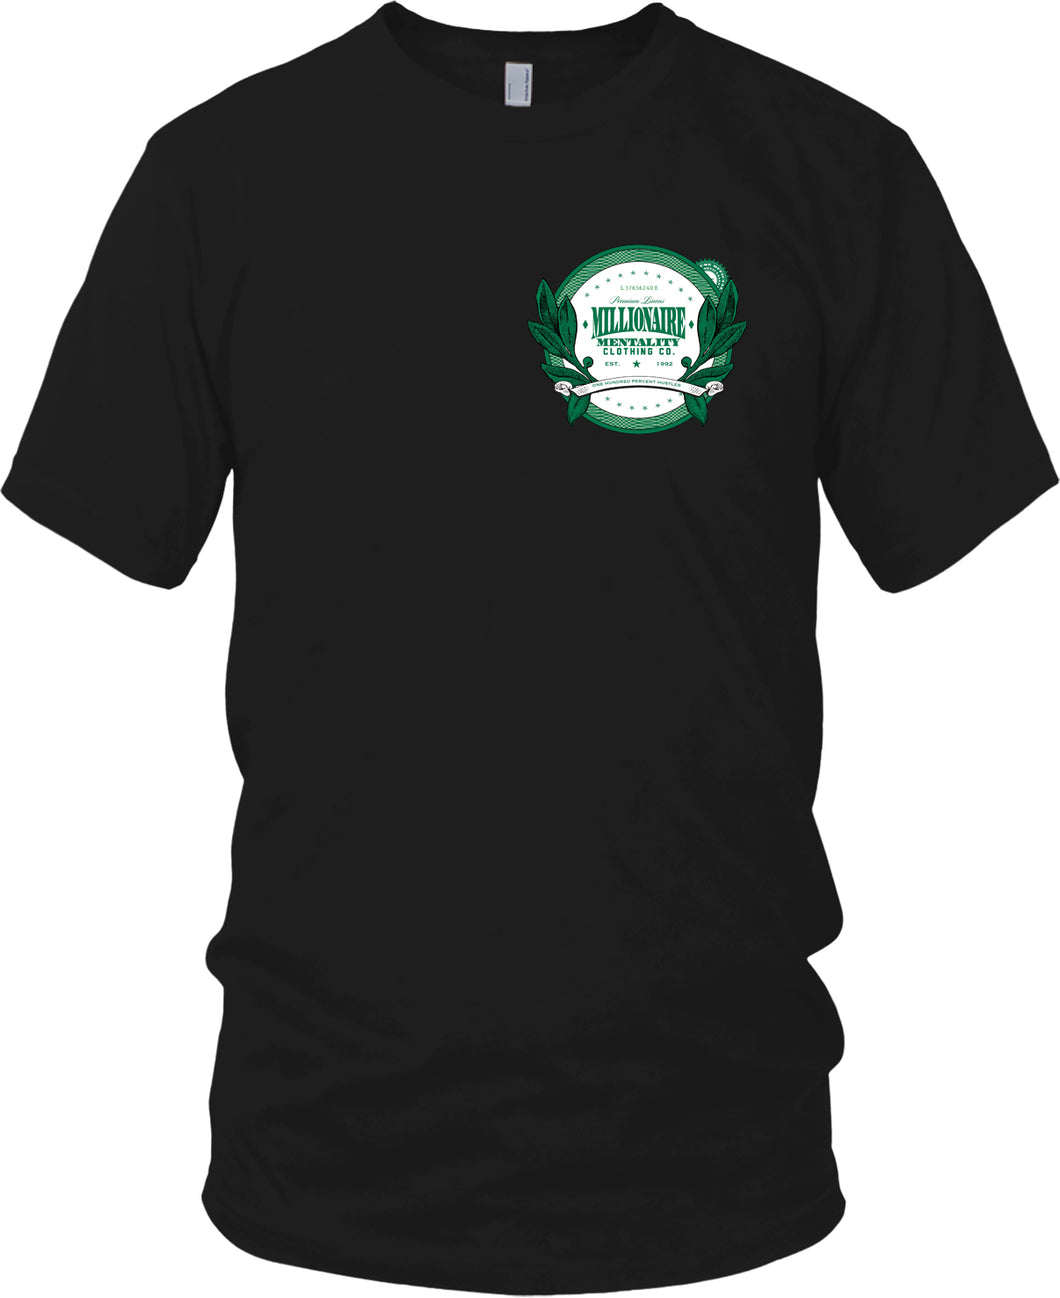 MILLIONAIRE MENTALITY CLOTHING CO. LOGO (LIMITED EDITION) GREEN & WHITE